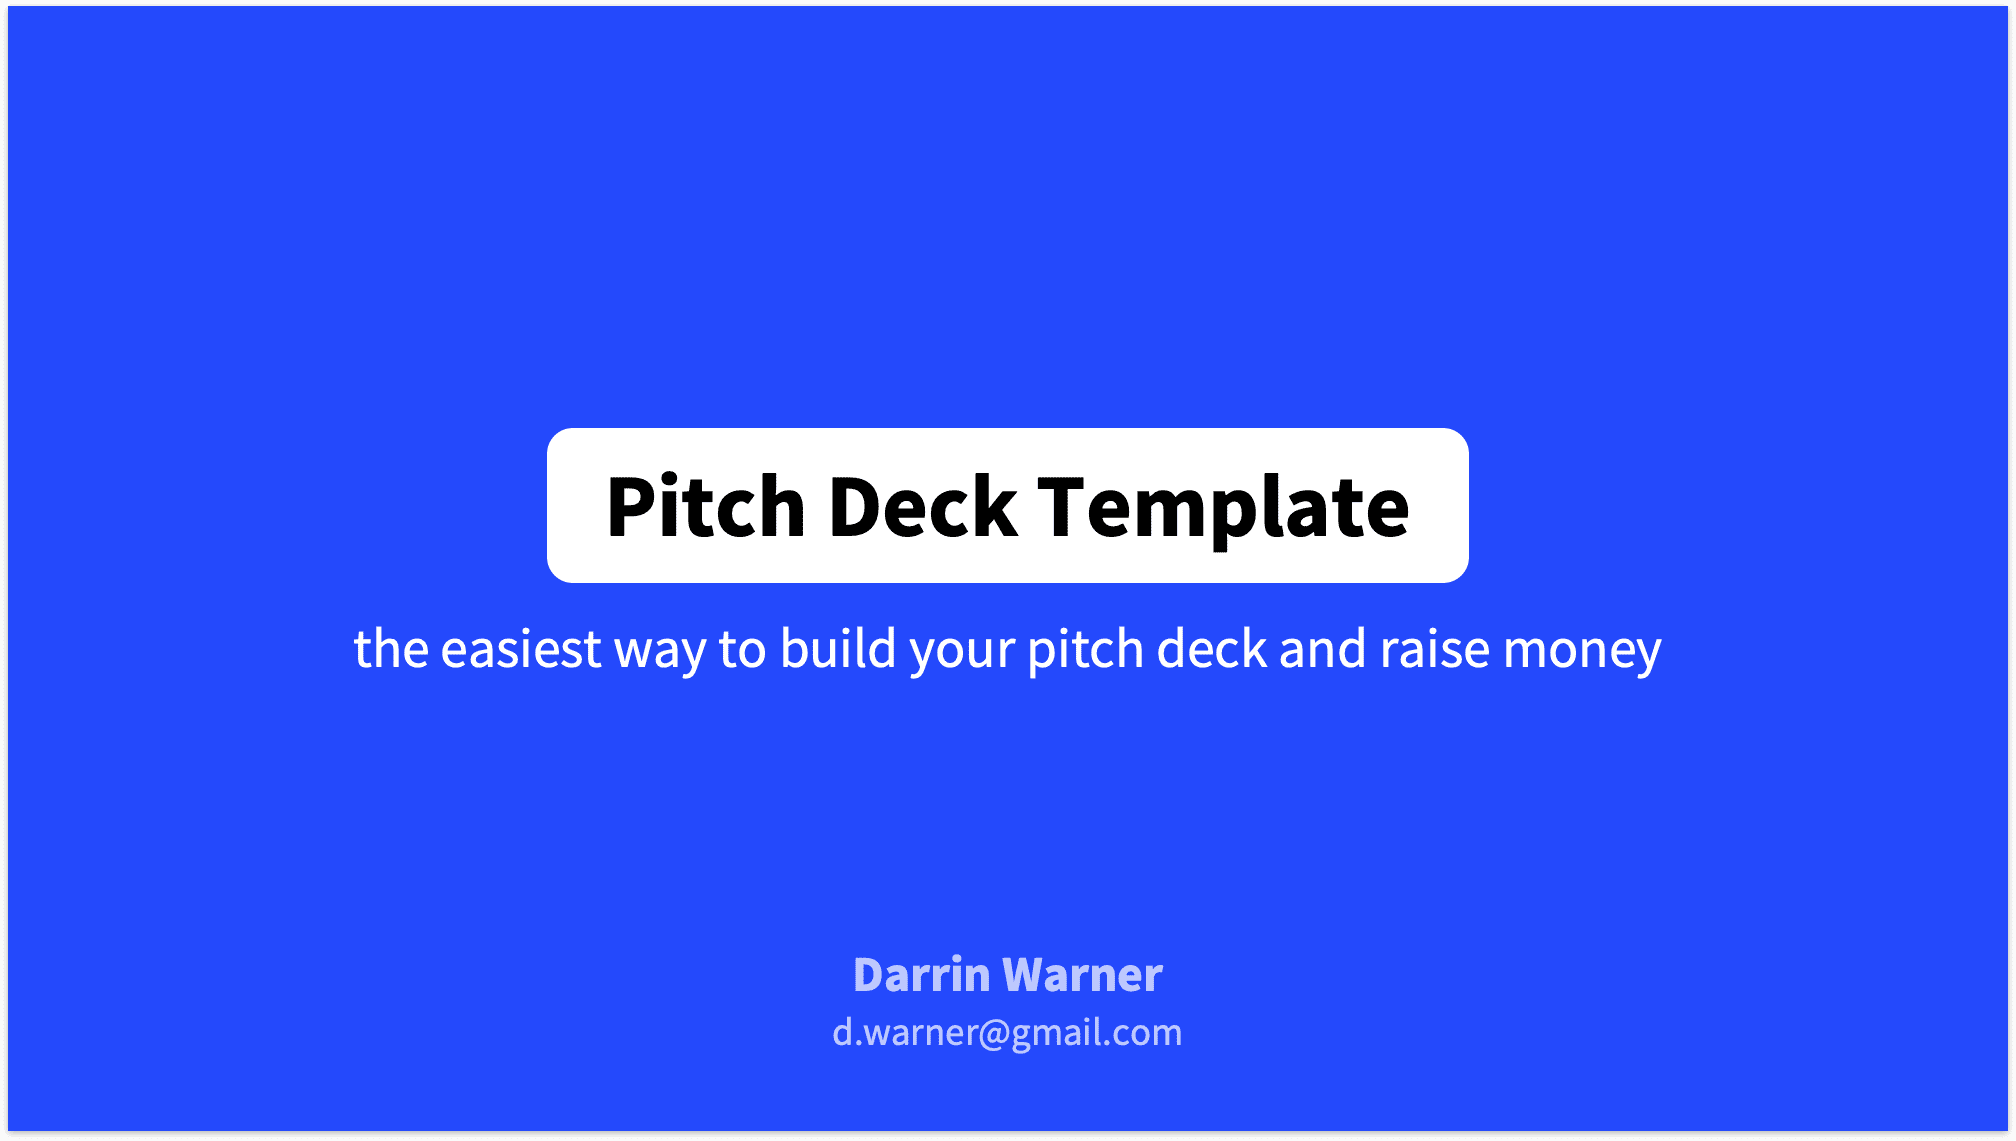 Pitch Deck Title Slide in Blue